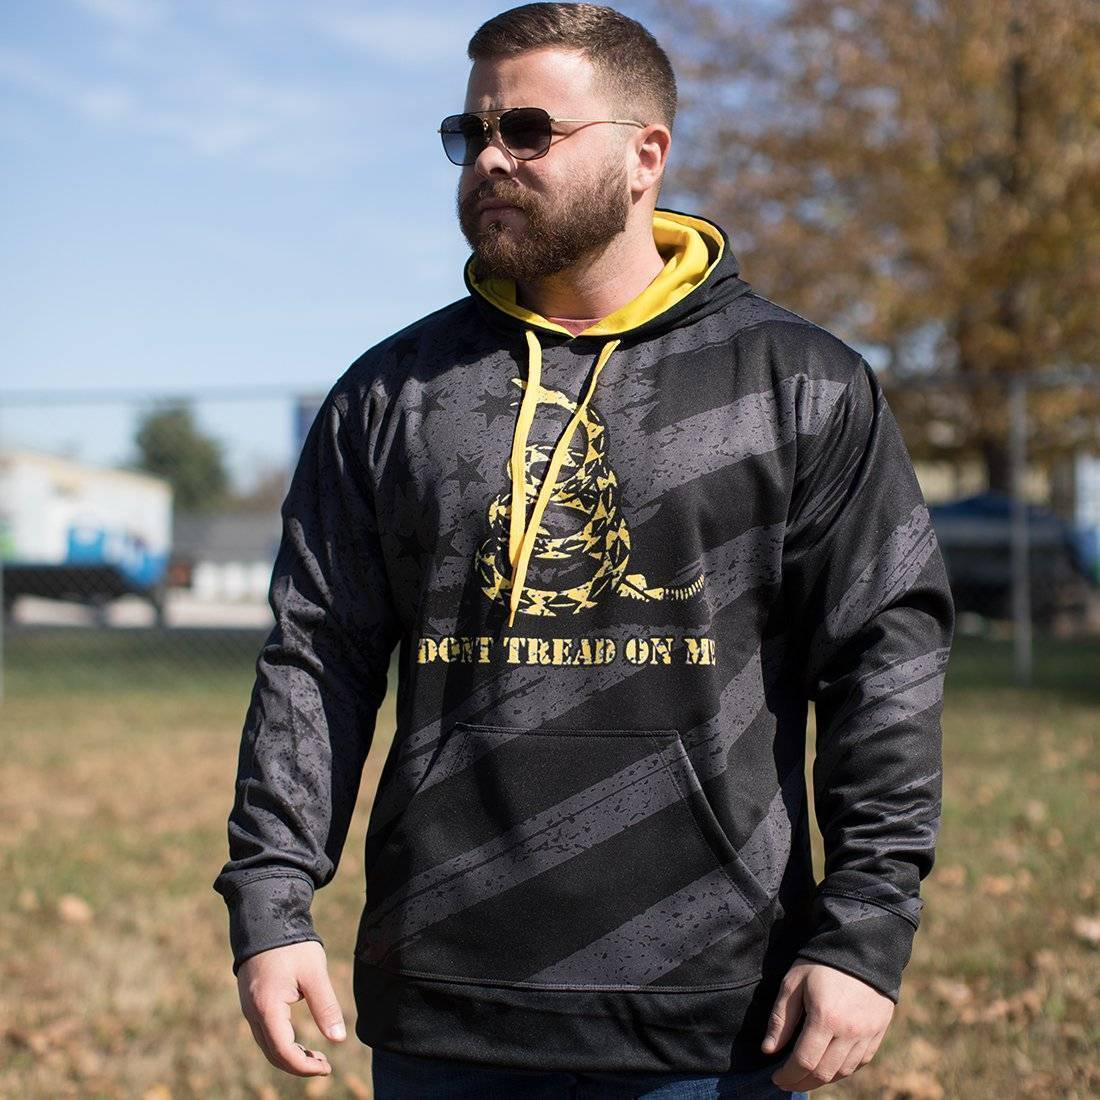 Don't Tread On Me Hoodie - Greater Half